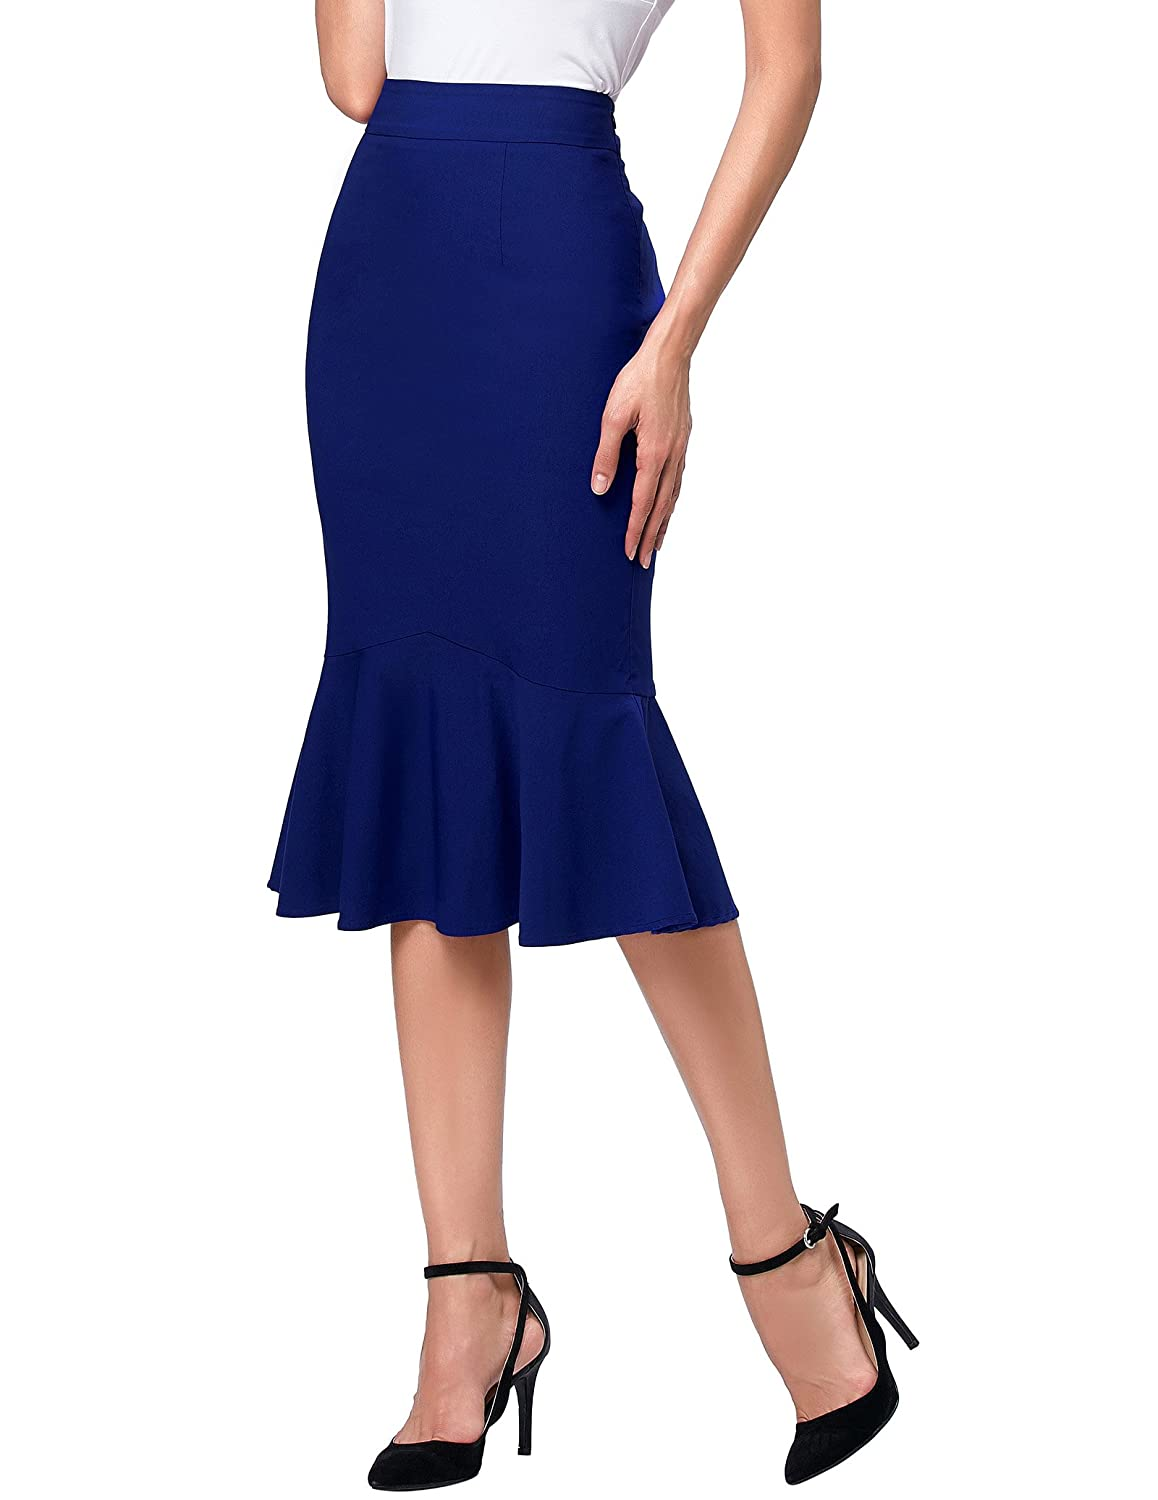 Swing Dance Dresses | Lindy Hop Dresses & Clothing Kate Kasin Womens Wear to Work Stretchy Pencil Skirts $16.79 AT vintagedancer.com